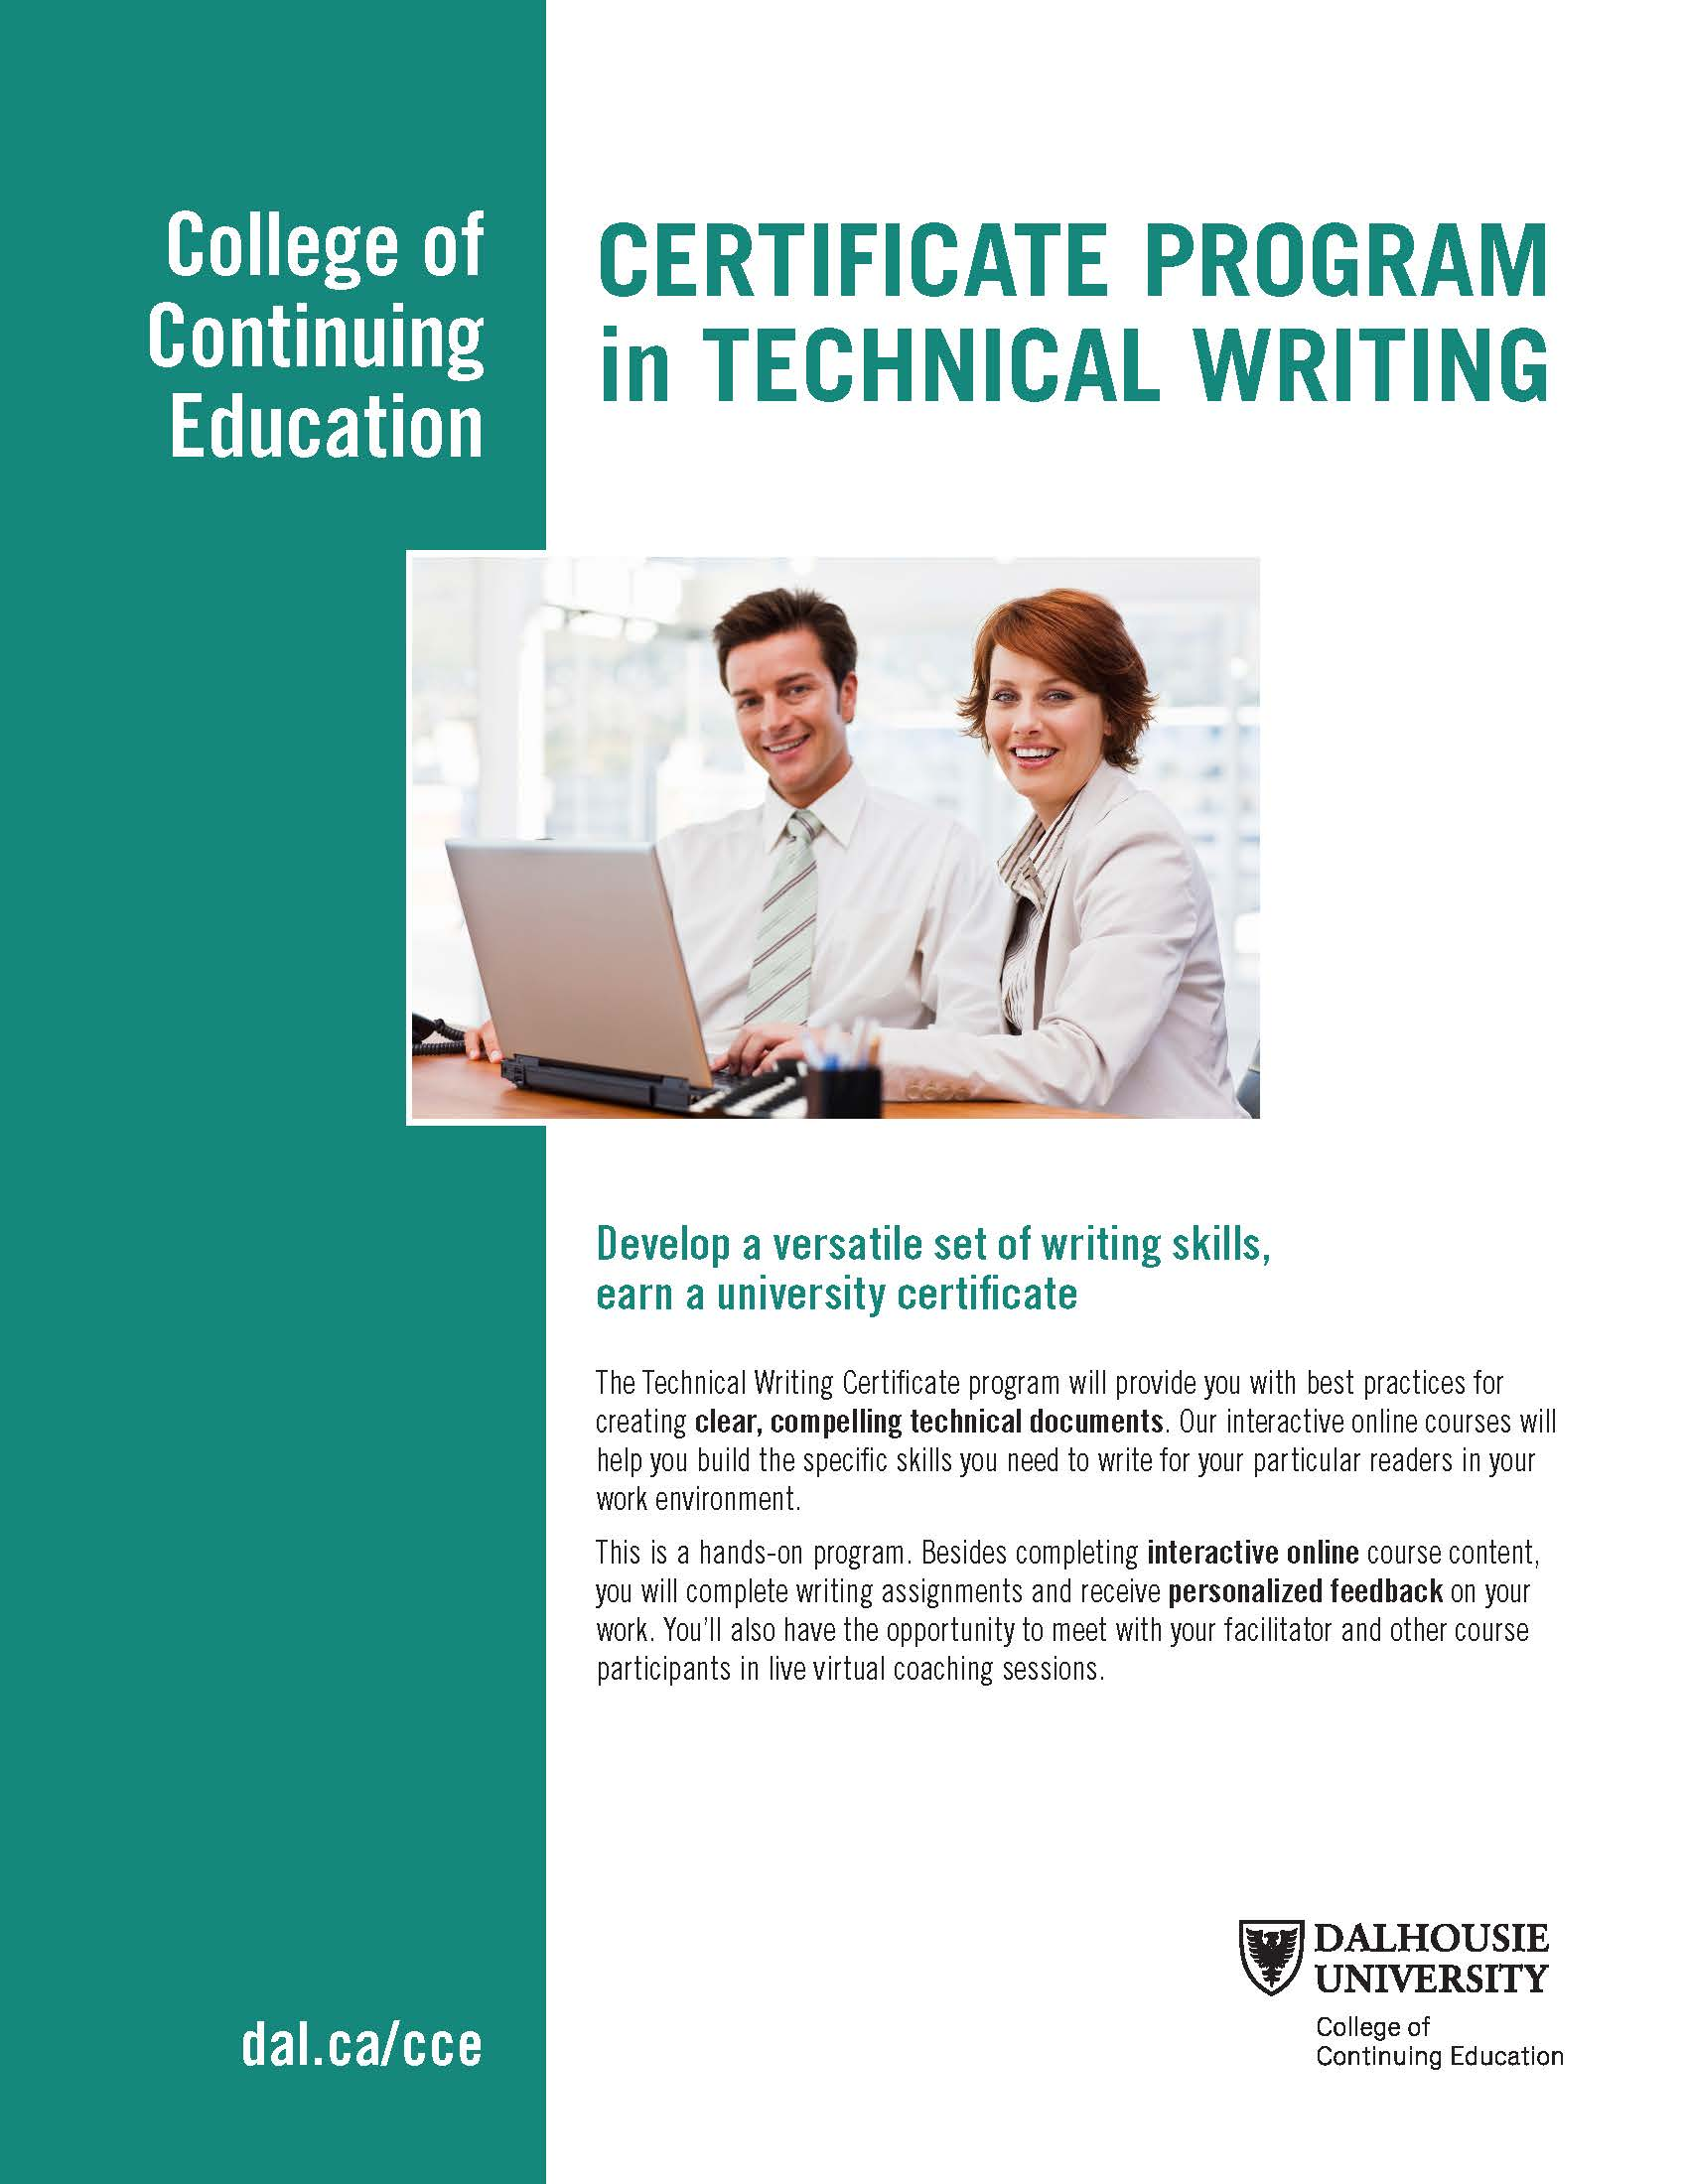 Accredited Online Writing Degree Programs